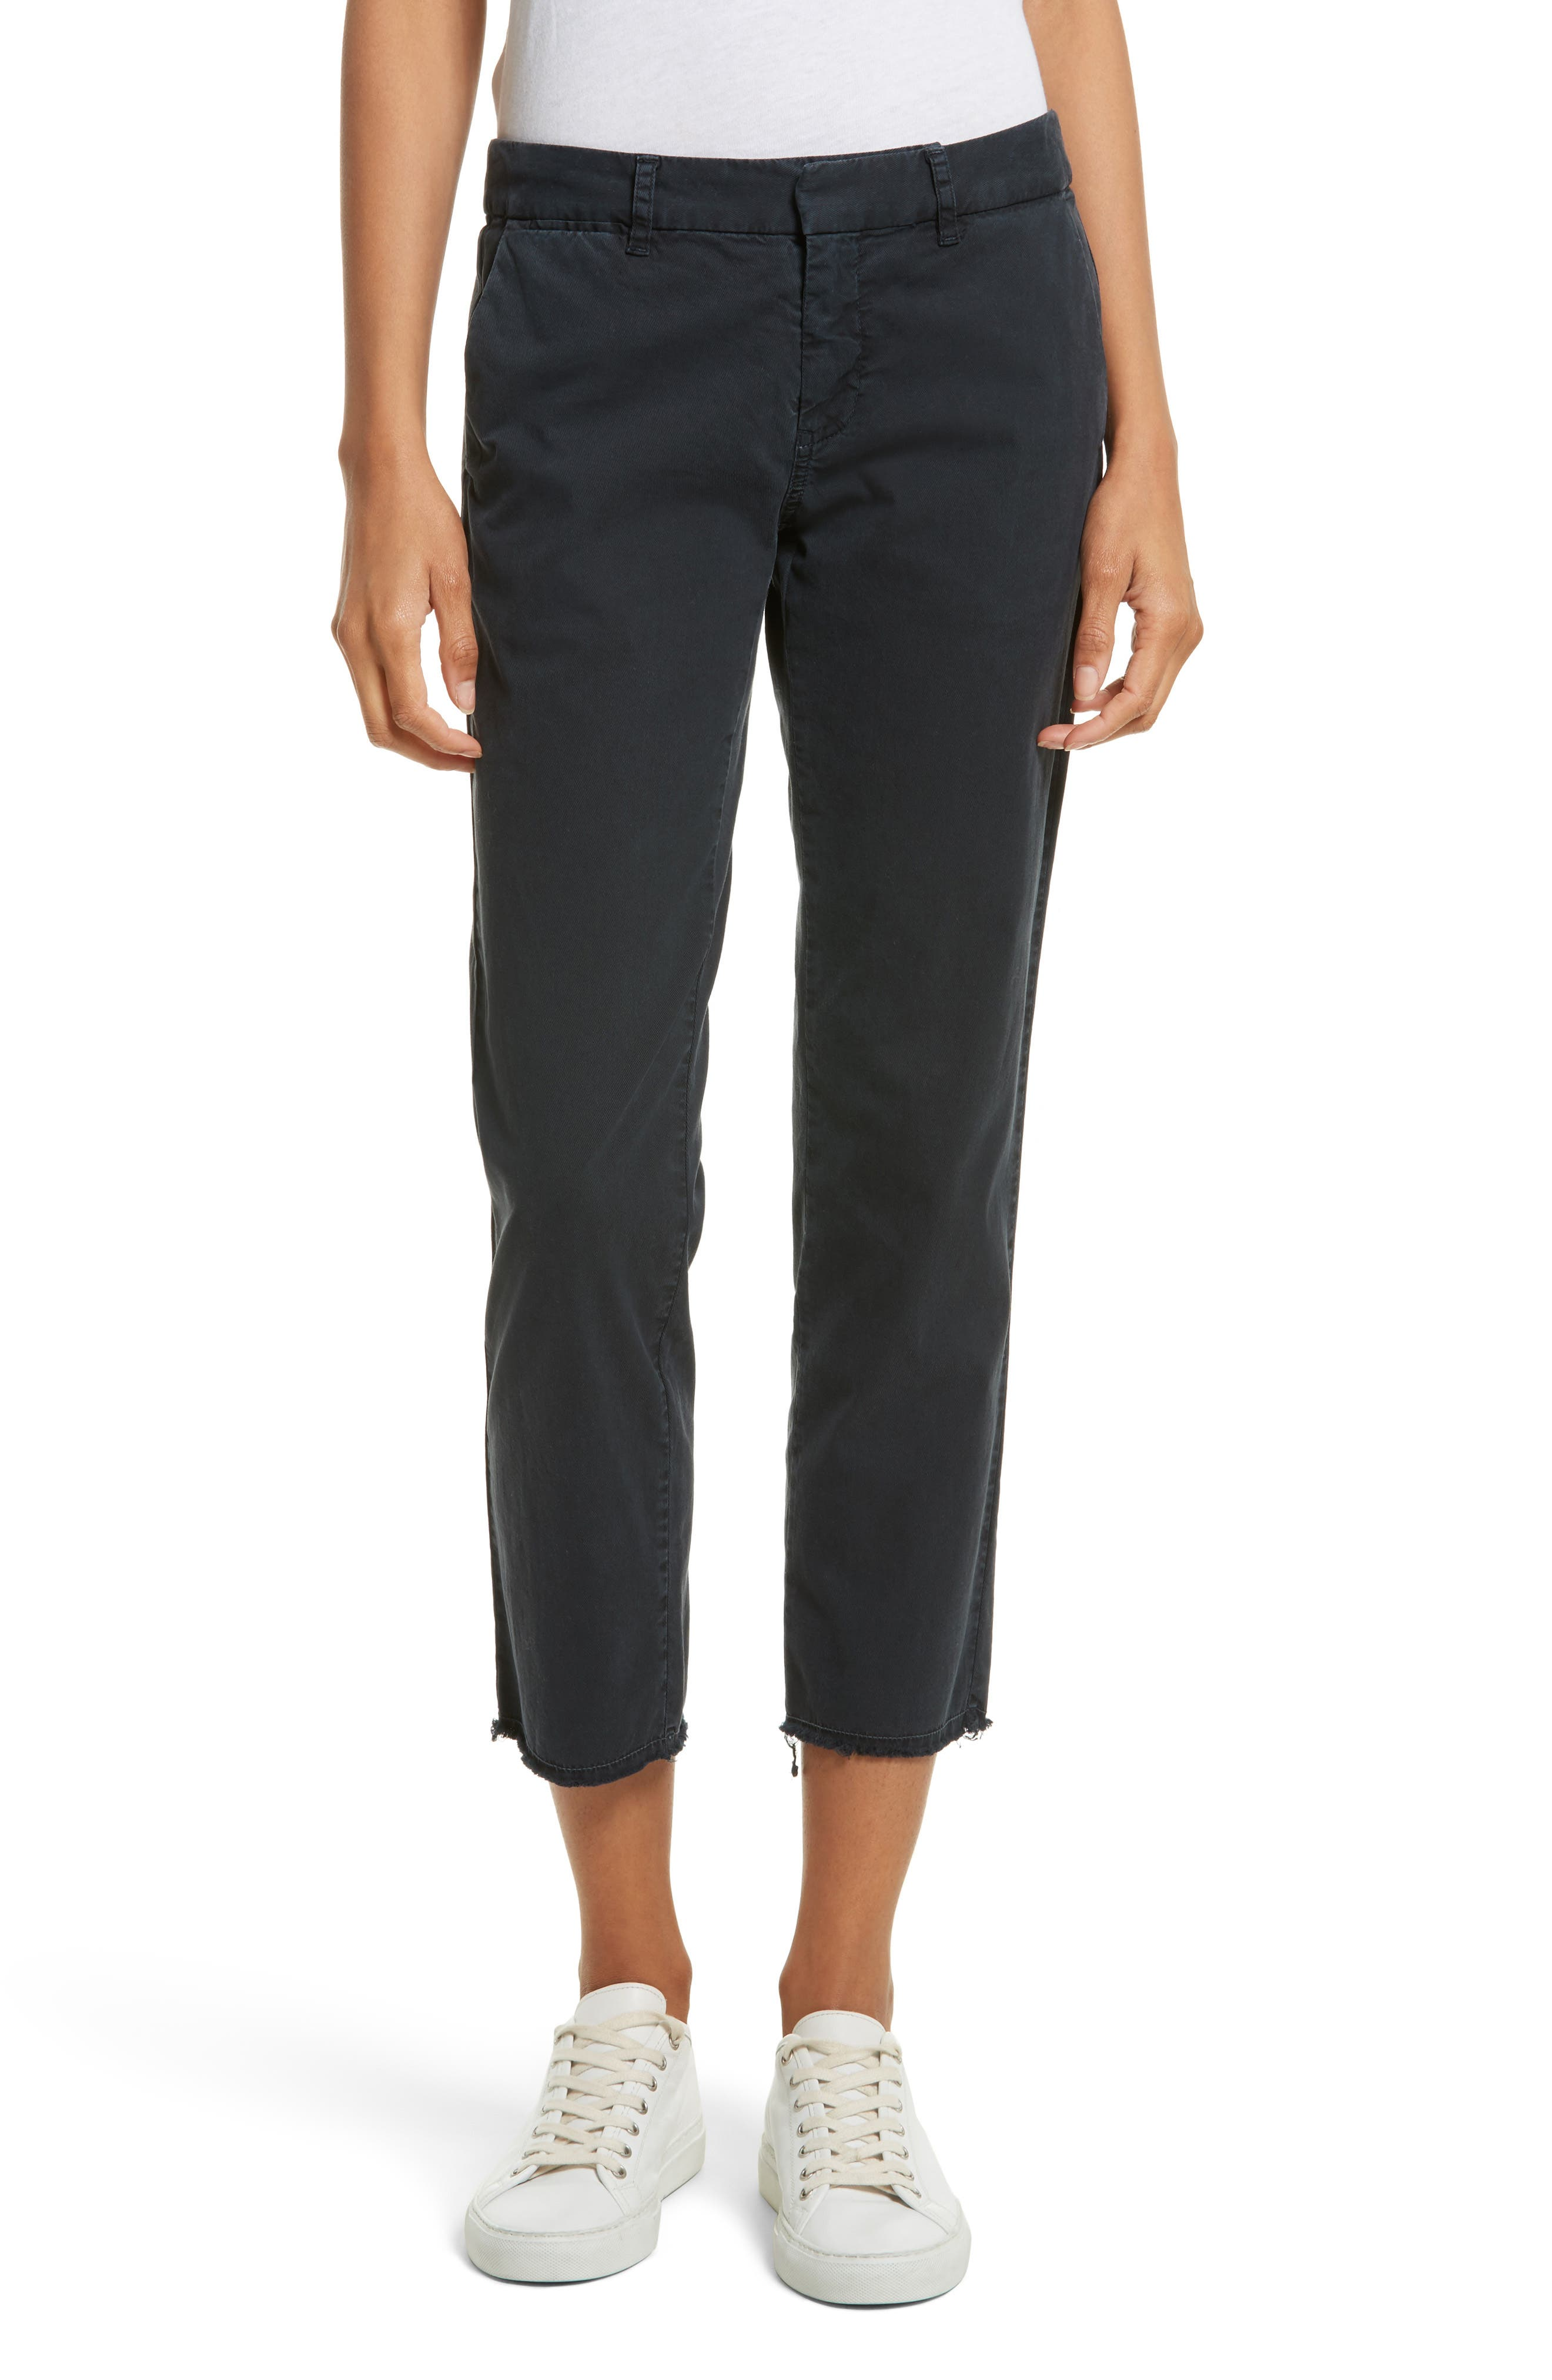 East Hampton Stretch Cotton Twill Crop Pants,                         Main,                         color, Dark Navy